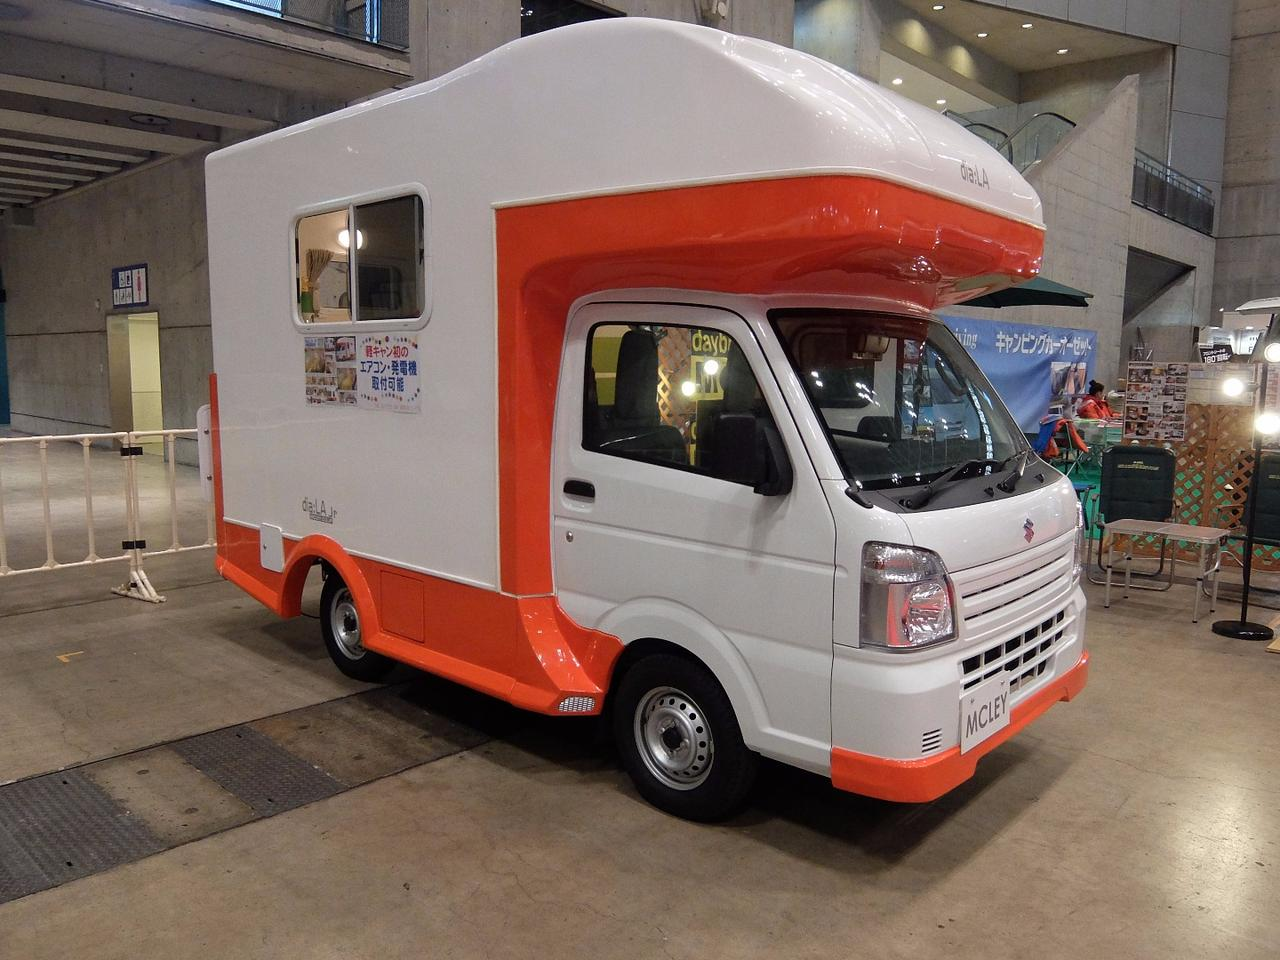 The dia-LA Junior by MCLEY is available as a 2 or 4 wheel drive. The company says it can sleep 5 ... but 3 would be more comfortable.